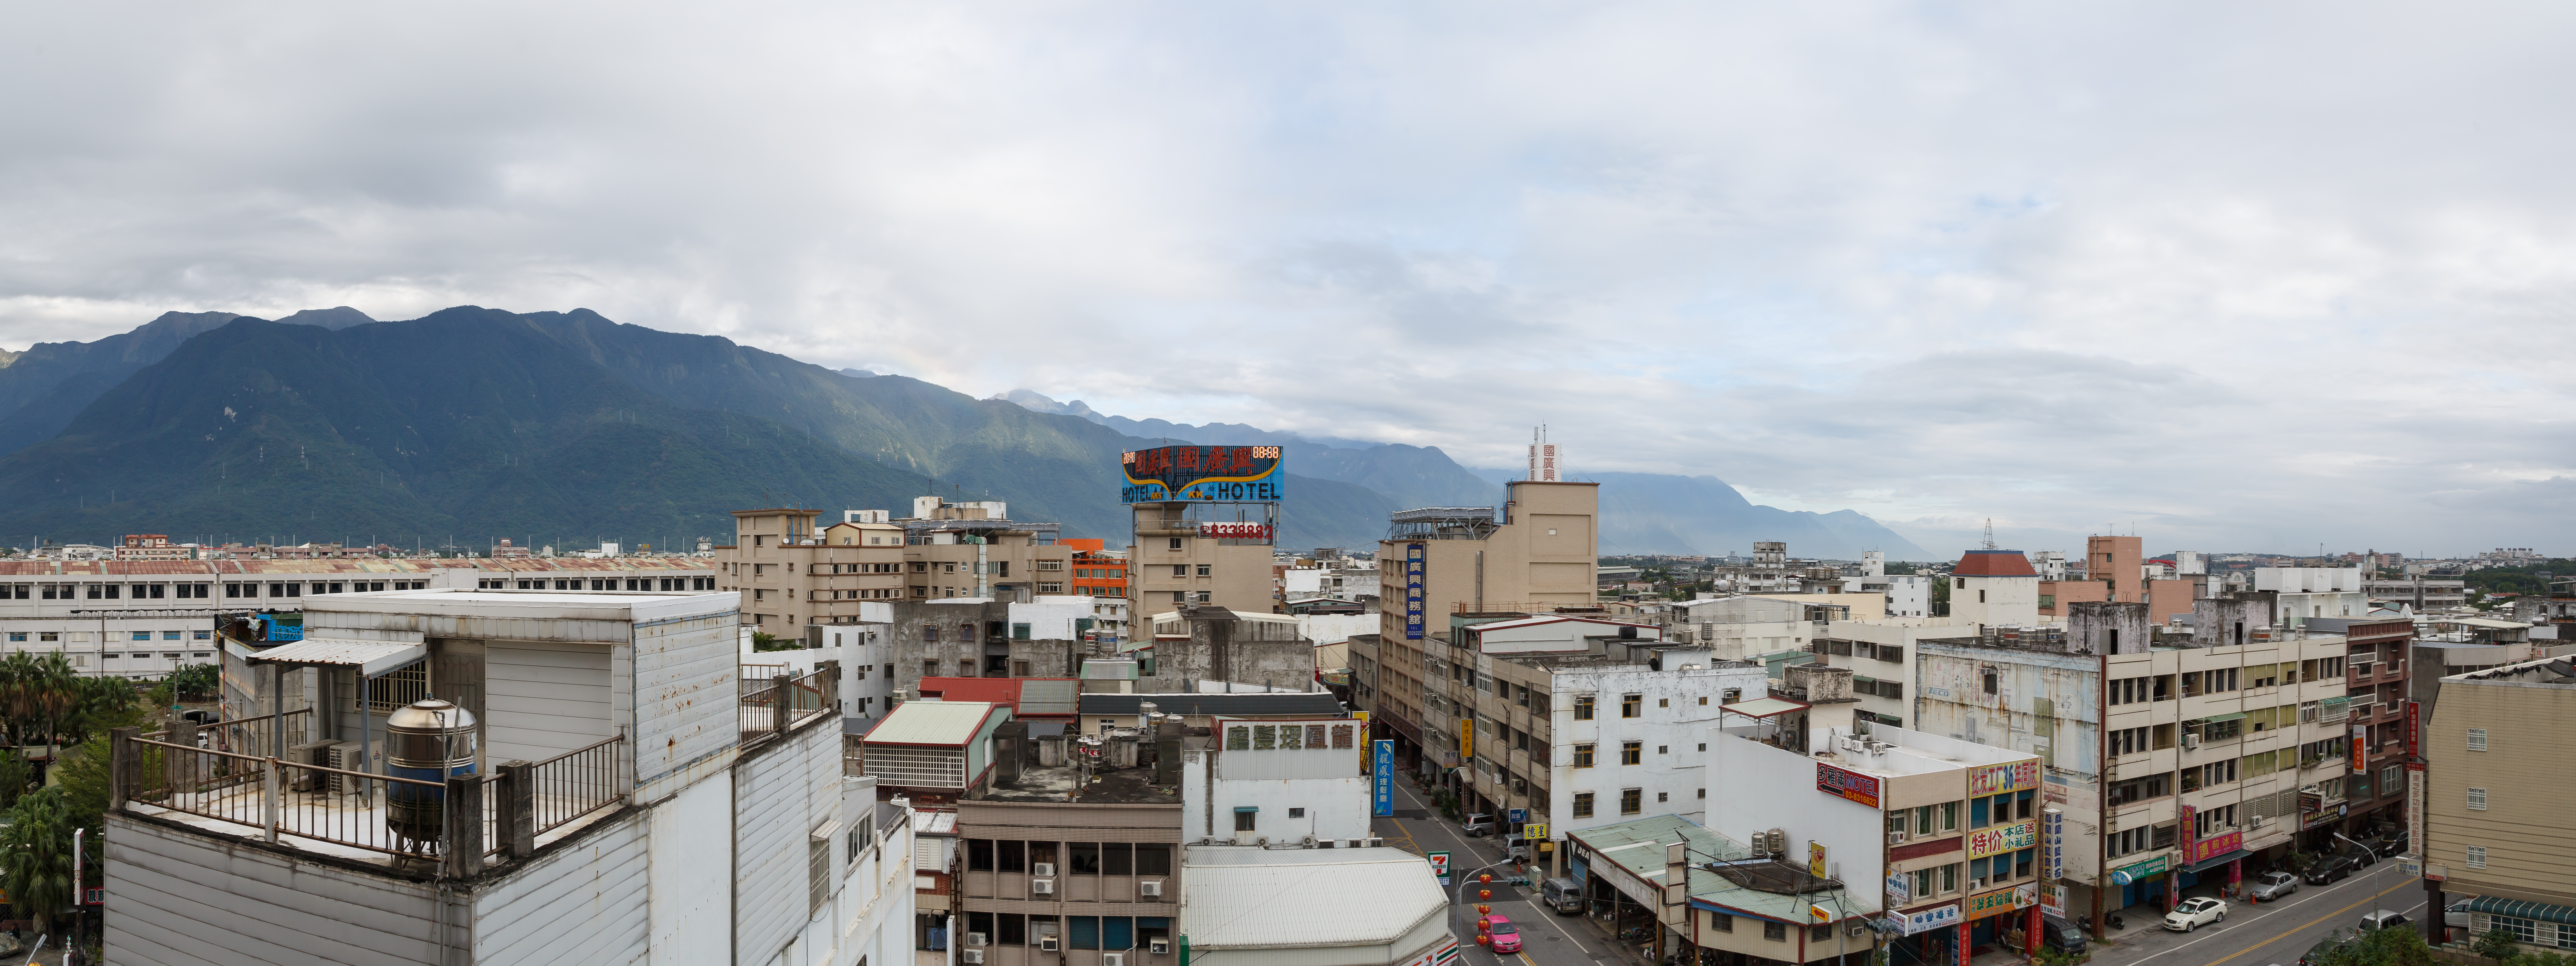 Hualien Taiwan cityscape with mountains.jpg